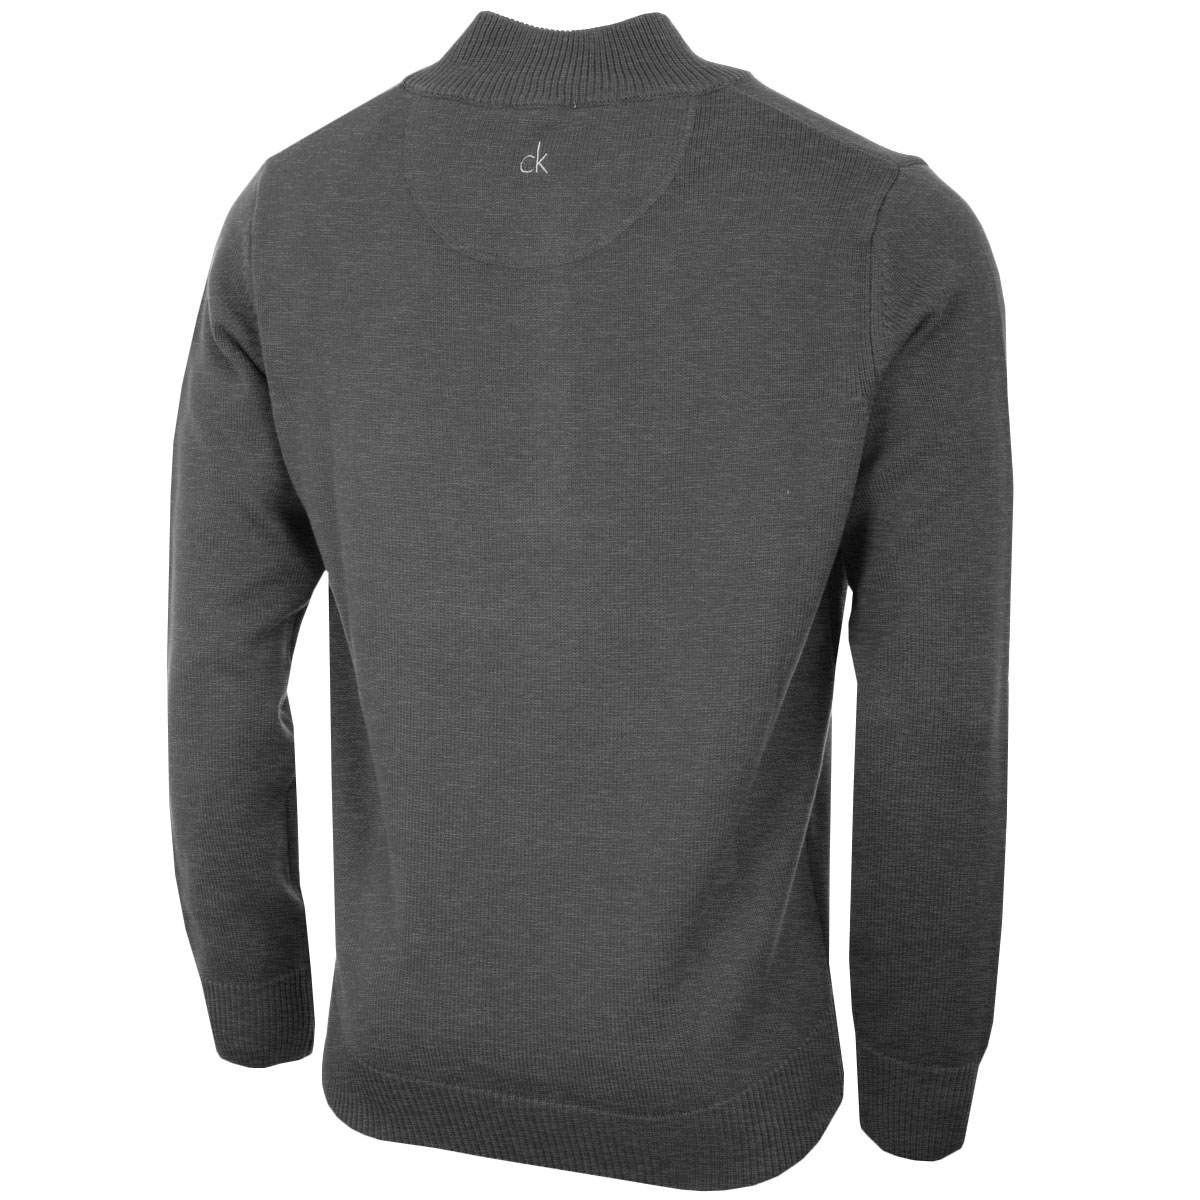 Calvin-Klein-Golf-Mens-2019-Chunky-Cotton-1-2-Zip-Golf-Top-Sweater-28-OFF-RRP thumbnail 17